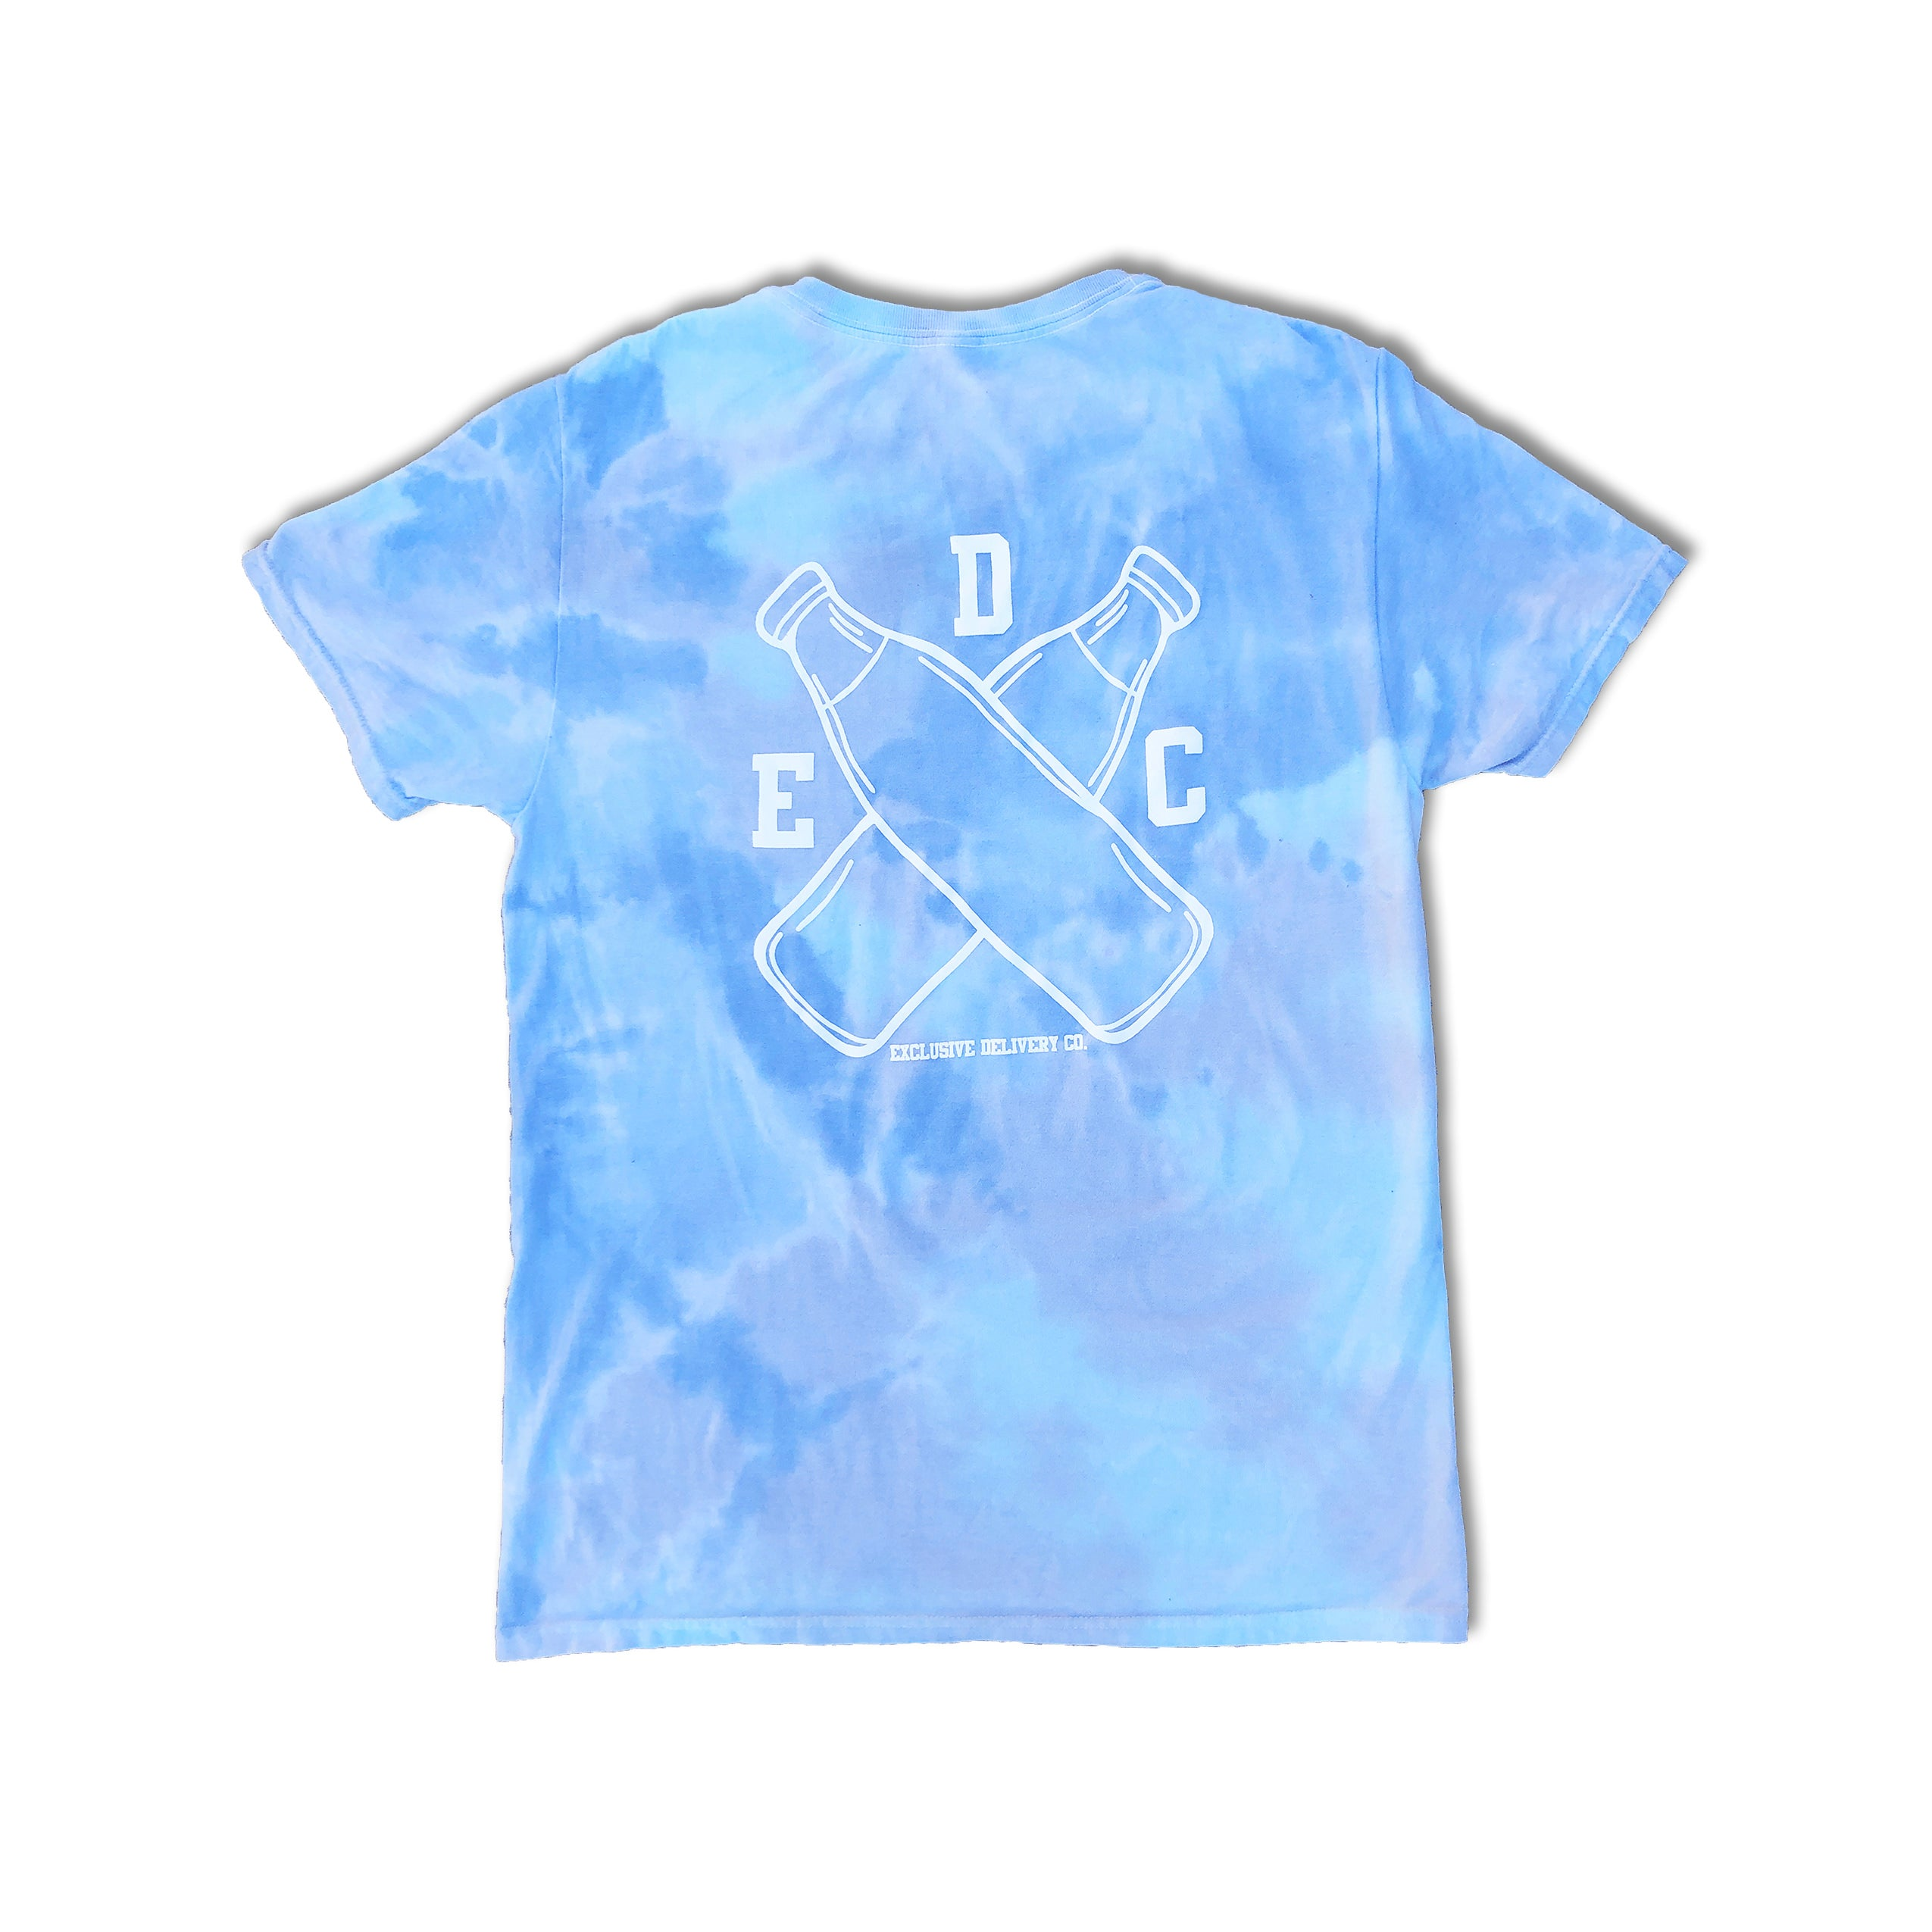 MILK BOTTLE LOGO S/S (TURQUOISE TIE-DYE)